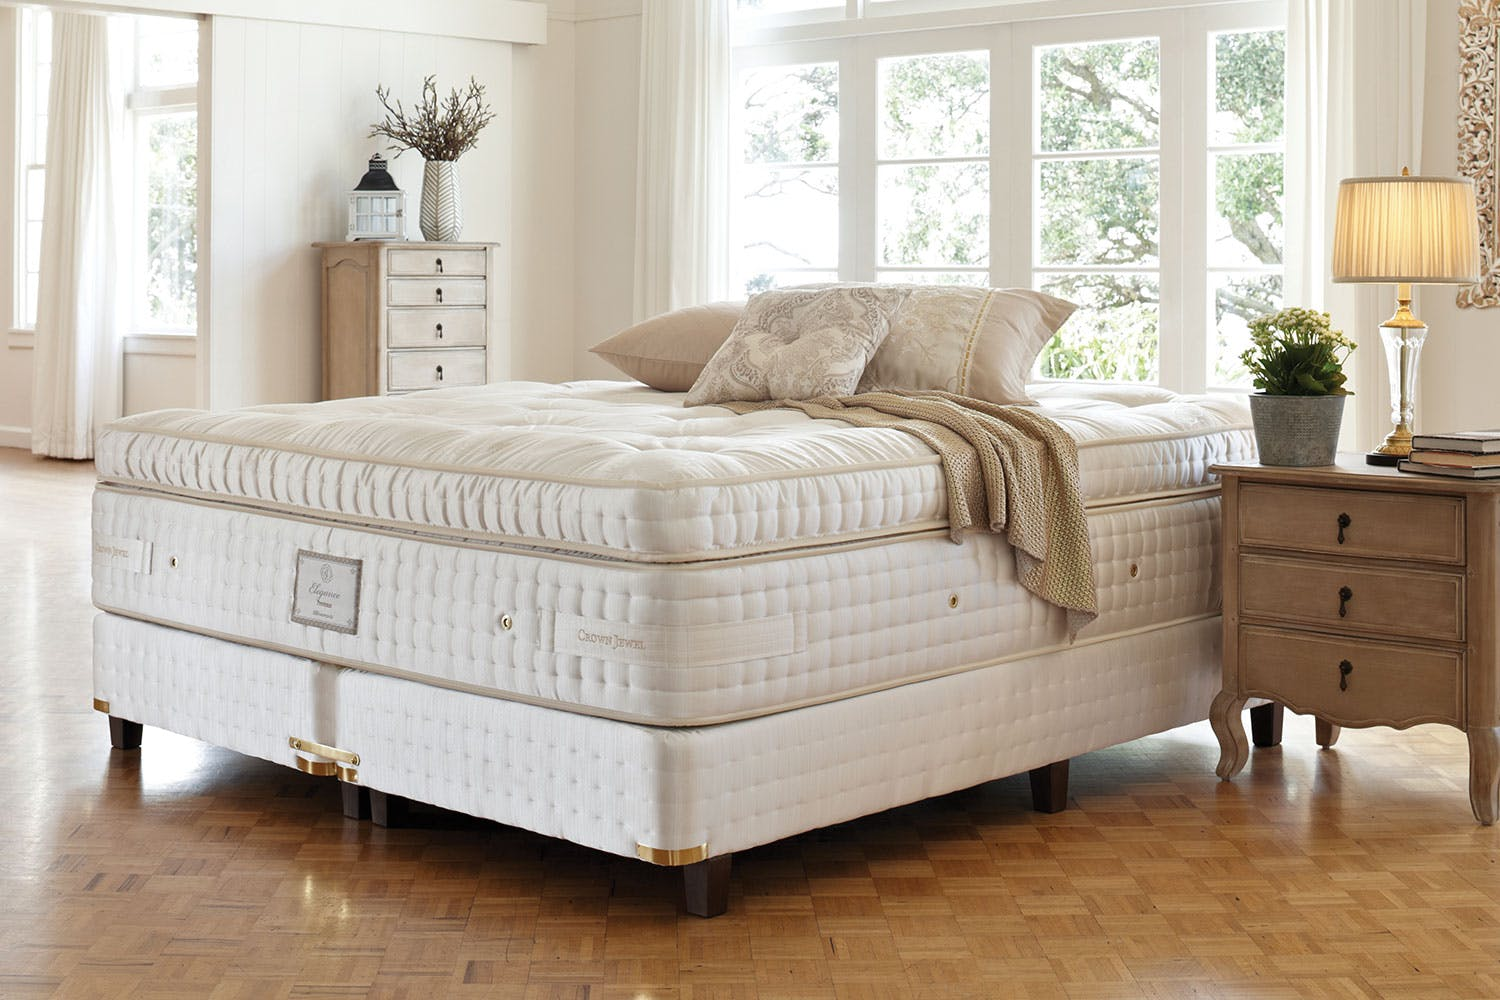 Provence Bedroom Furniture Provence Ultra Plush Queen Mattress By Crown Jewel Harvey Norman